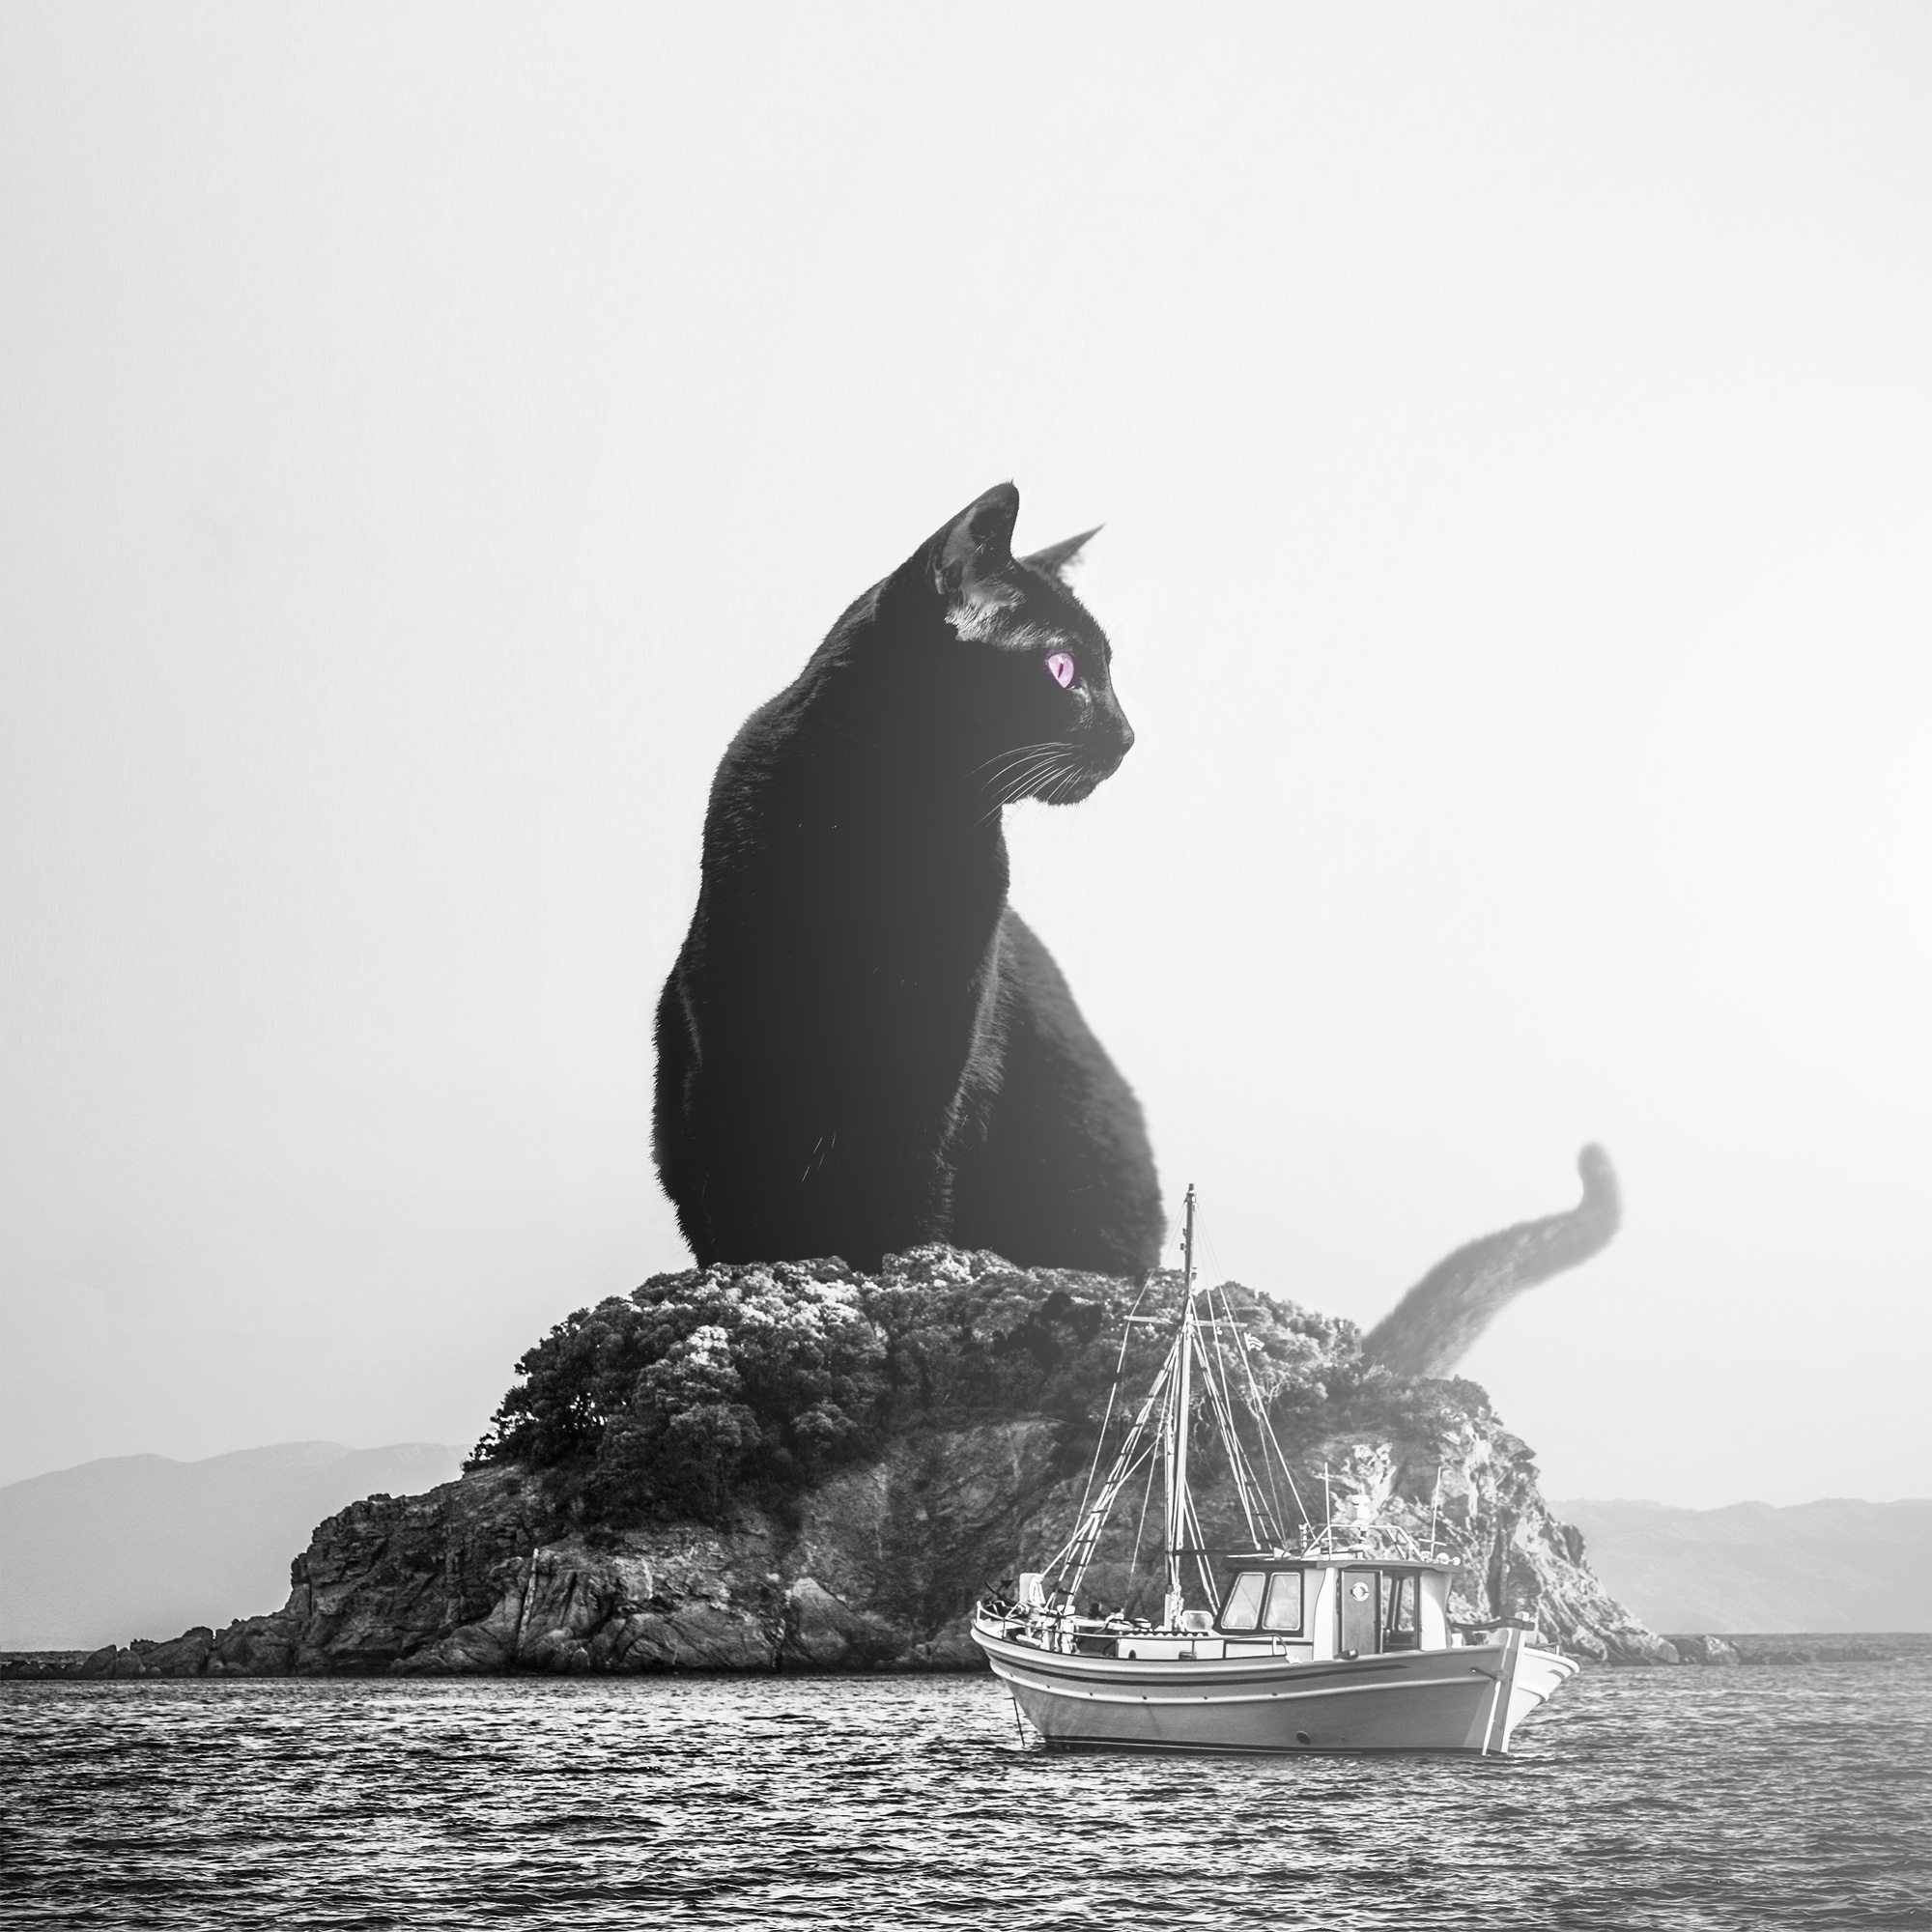 gigantic black cat on the small island surreal photography